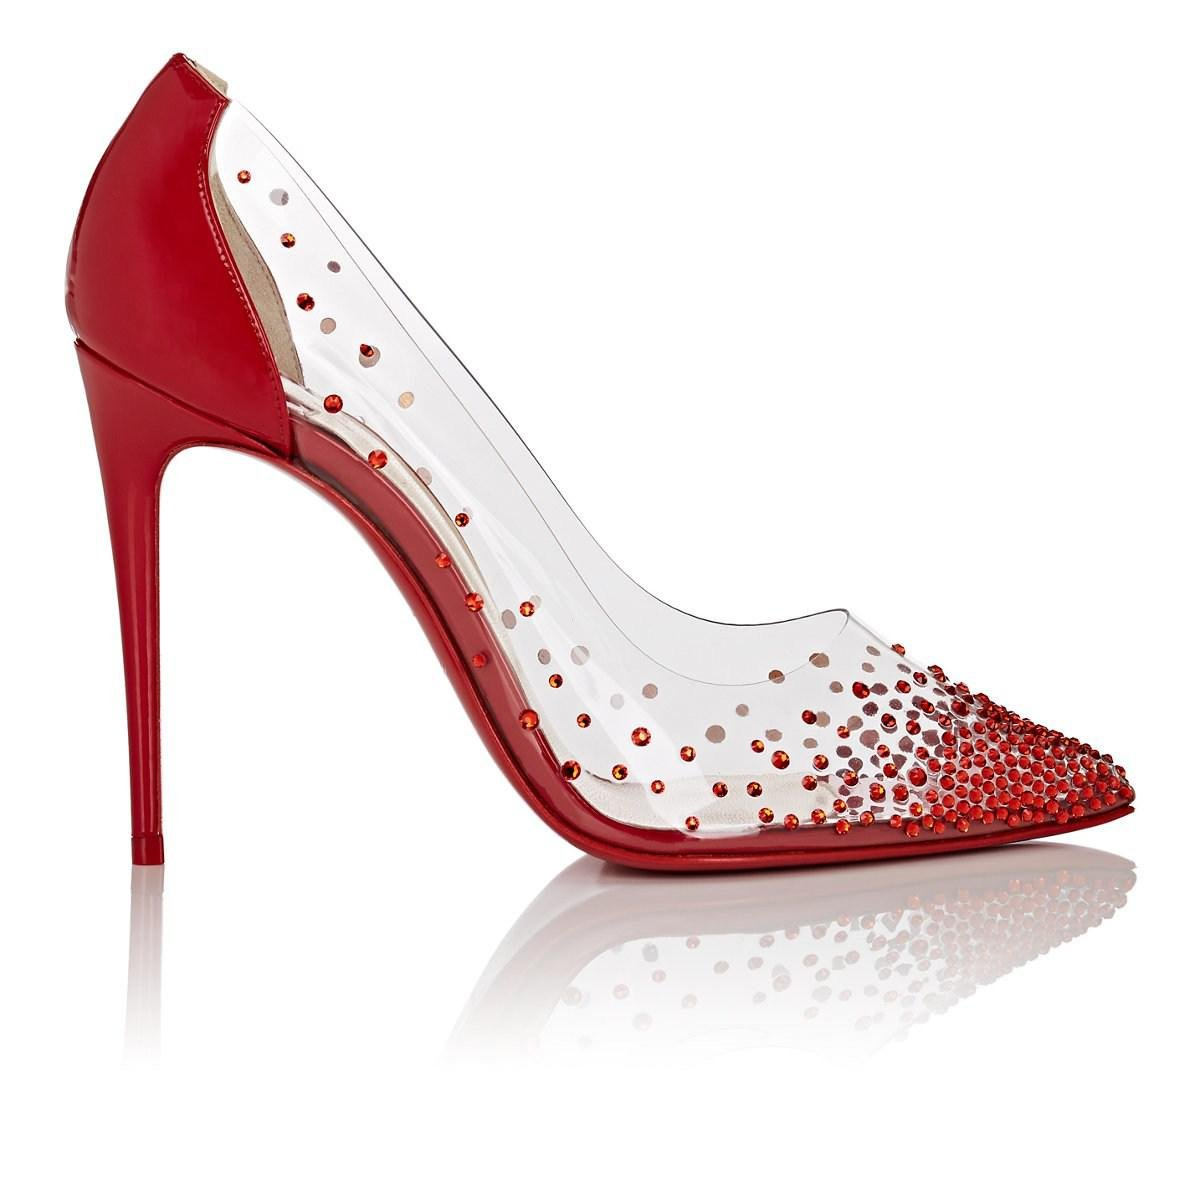 ac1d2265478c Christian Louboutin. Women s Red Degrastrass Pvc   Patent Leather Court  Shoes